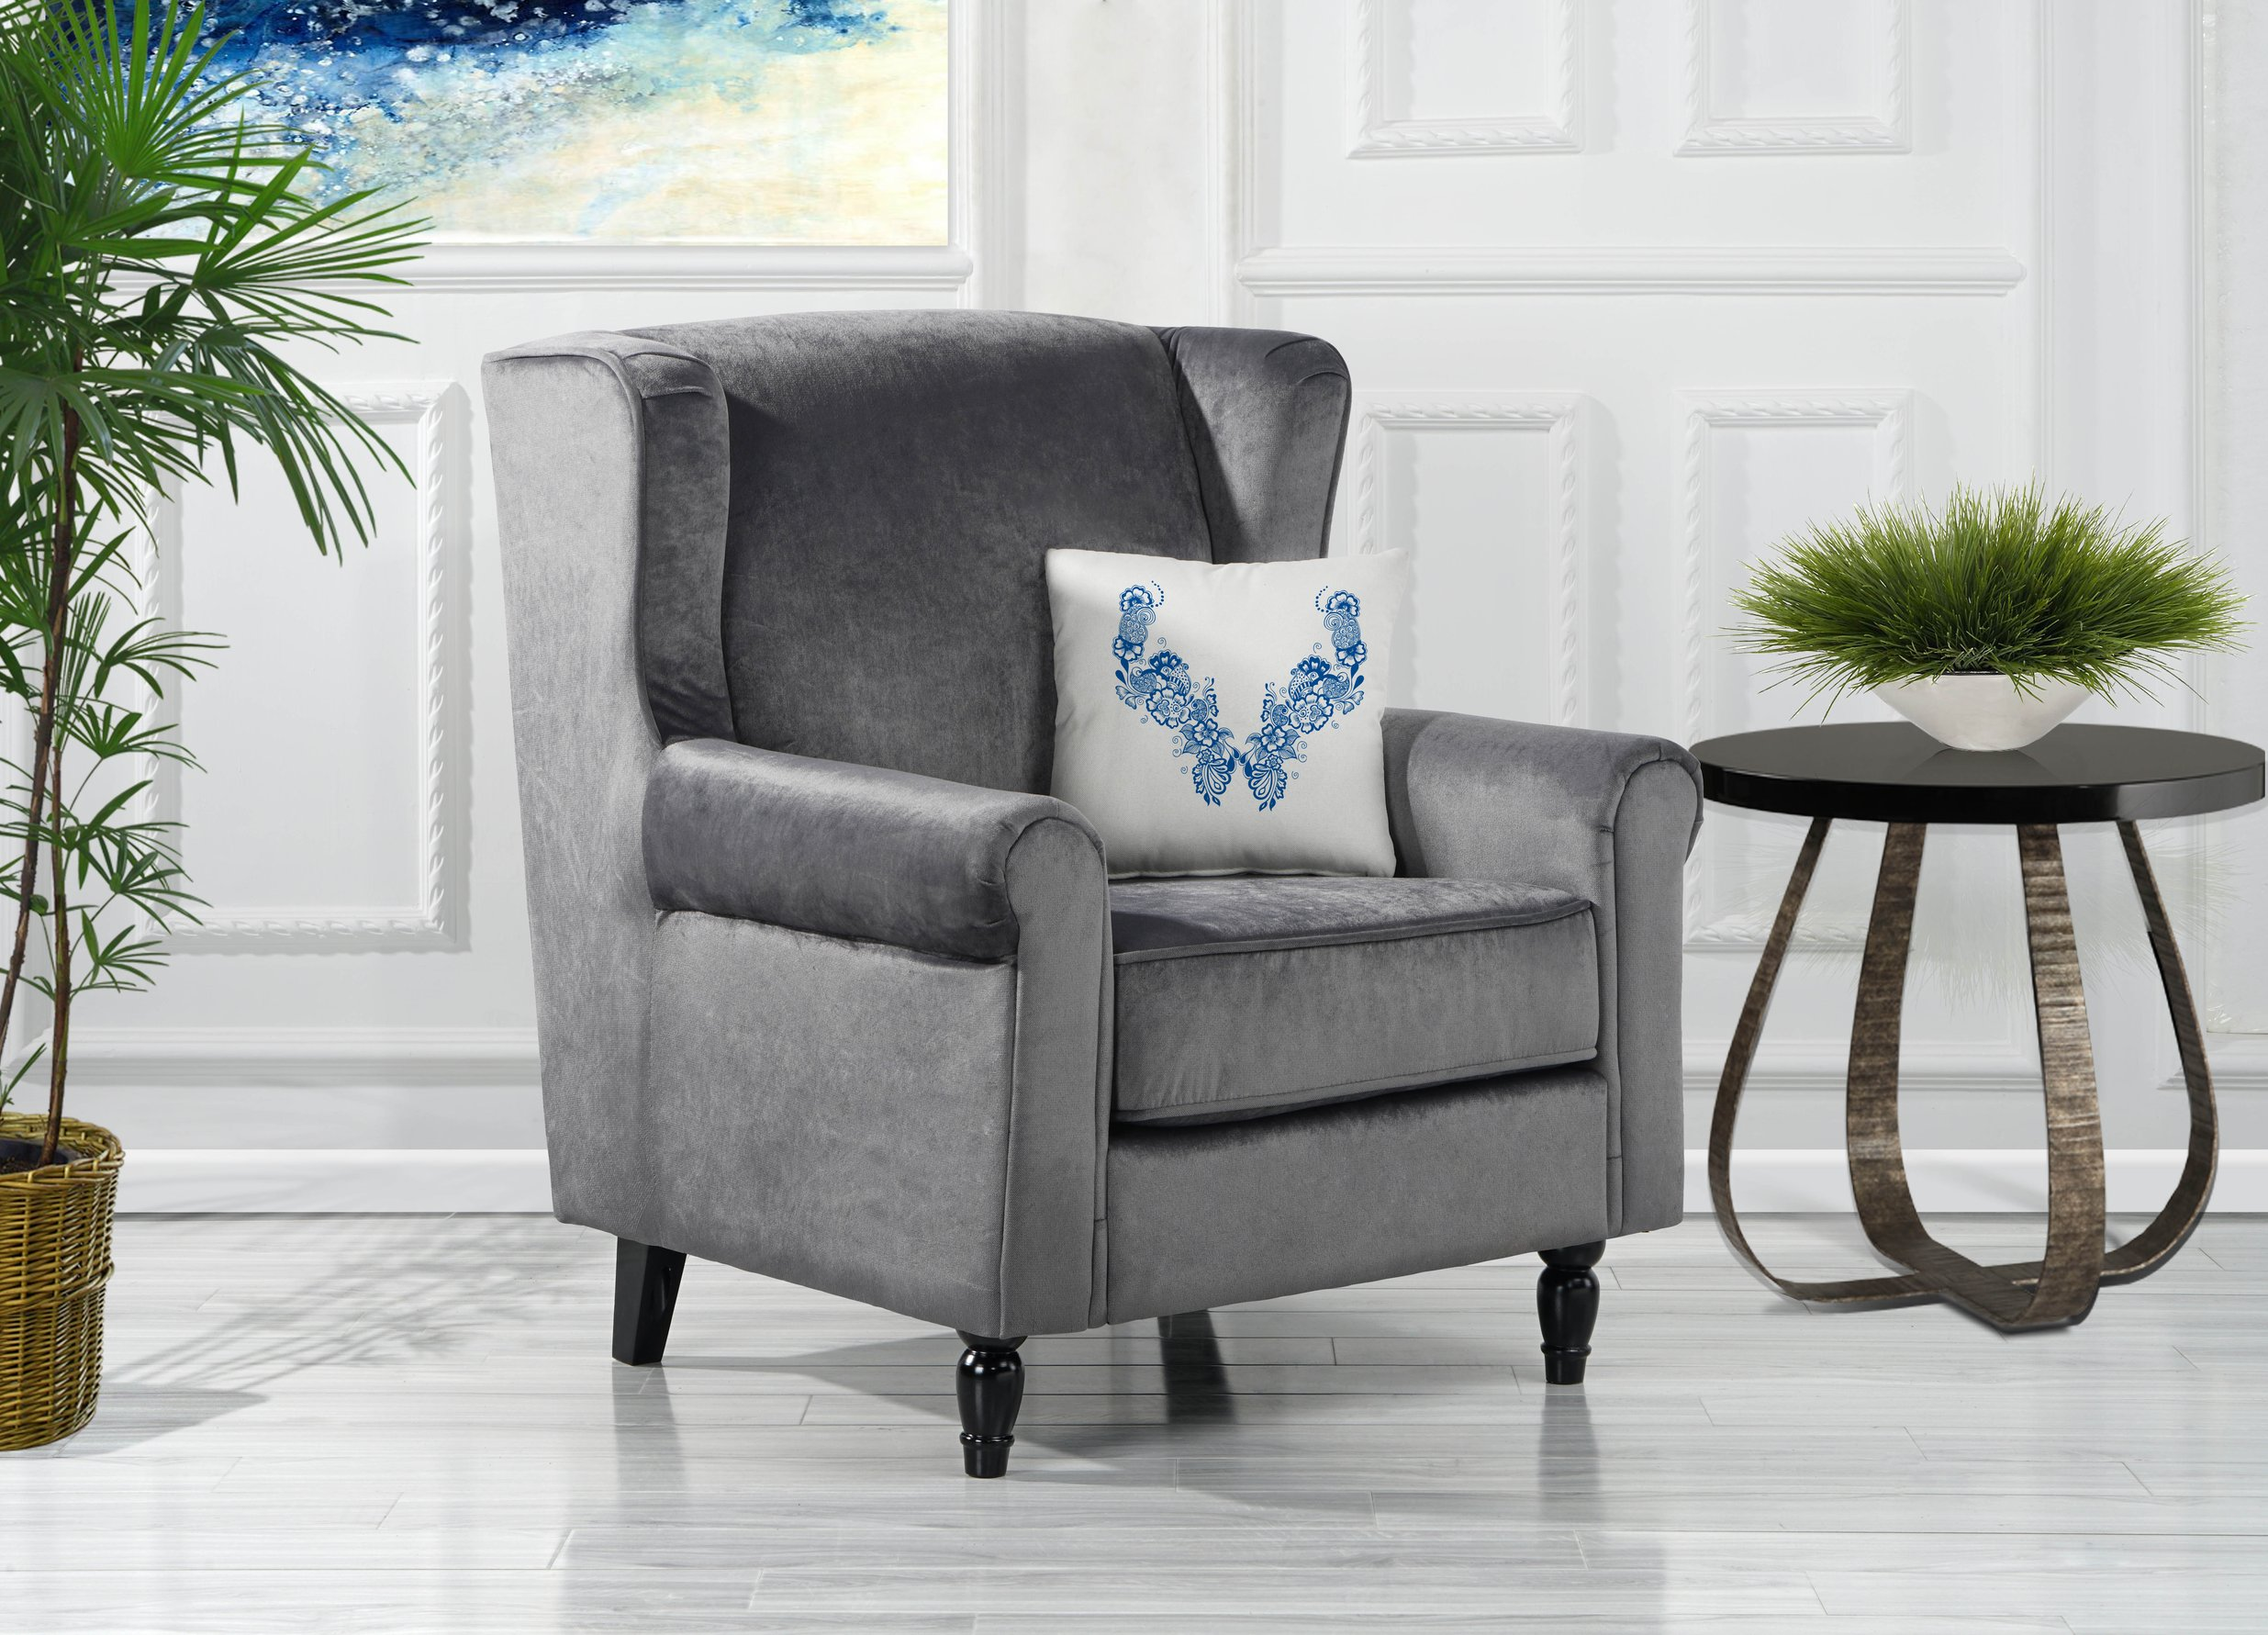 Details about Contemporary Velvet Accent Chair Living Room Armchair with  Wooden Legs Grey